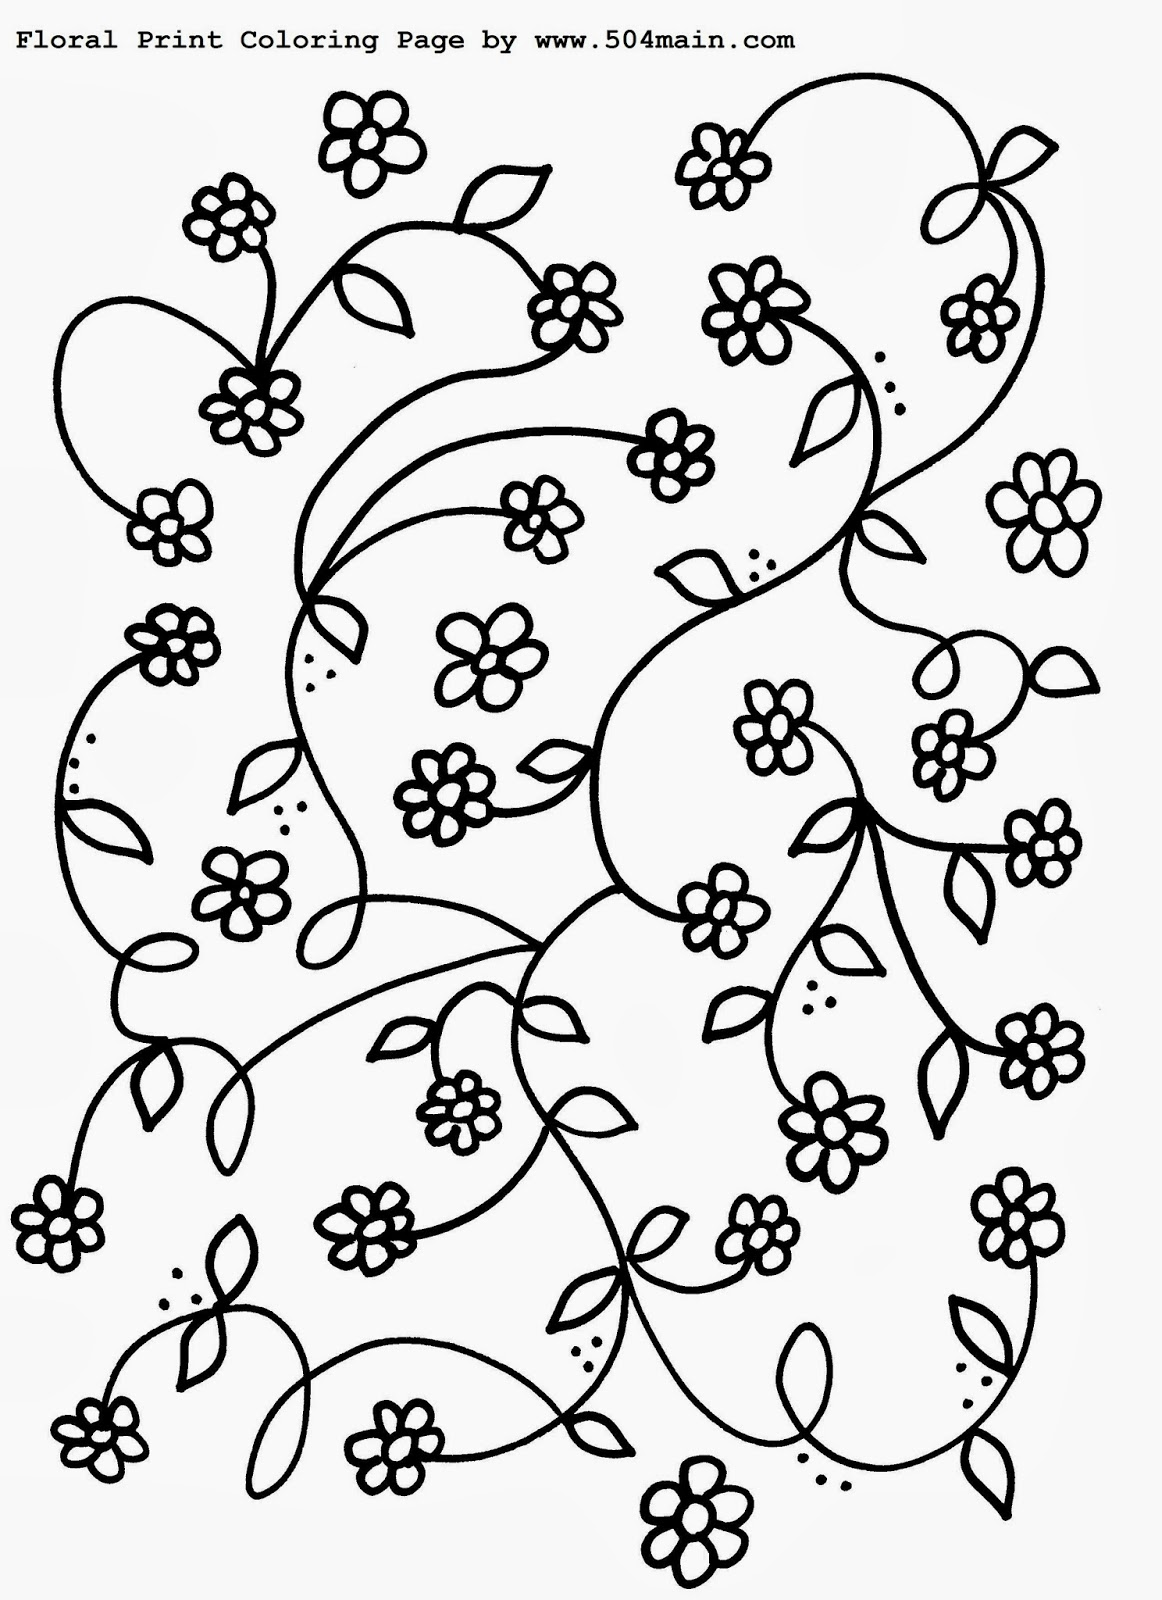 Floral Print Coloring Page Printable #shop #ColorfulCreations #Walmart #Cbias